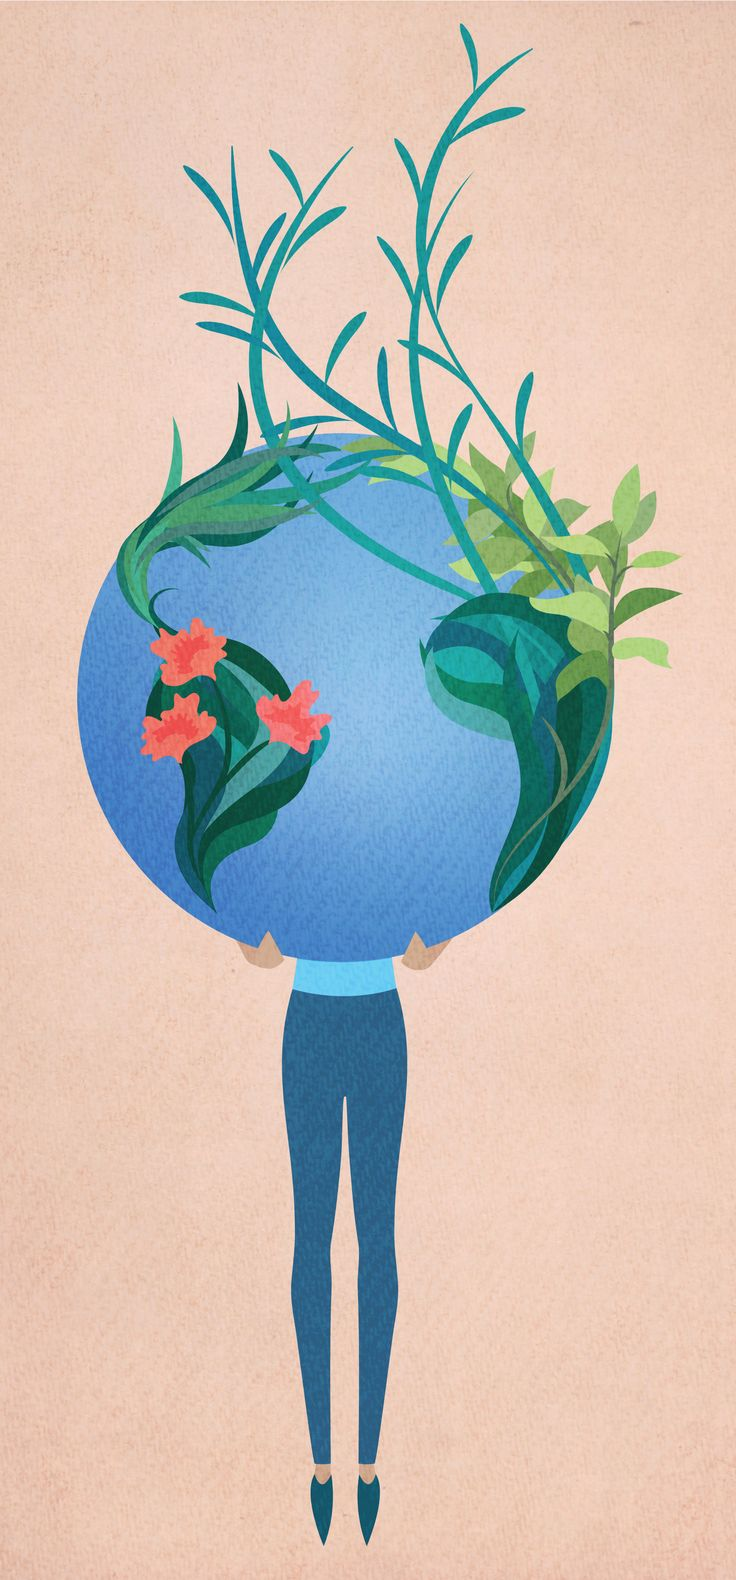 There are so many reasons to keep on loving our amazing planet earth! Illustration by Paula Kuka Common Wild for Earth Day 2017. Thank you for the trees, and the sunshine and the ocean and the bees.